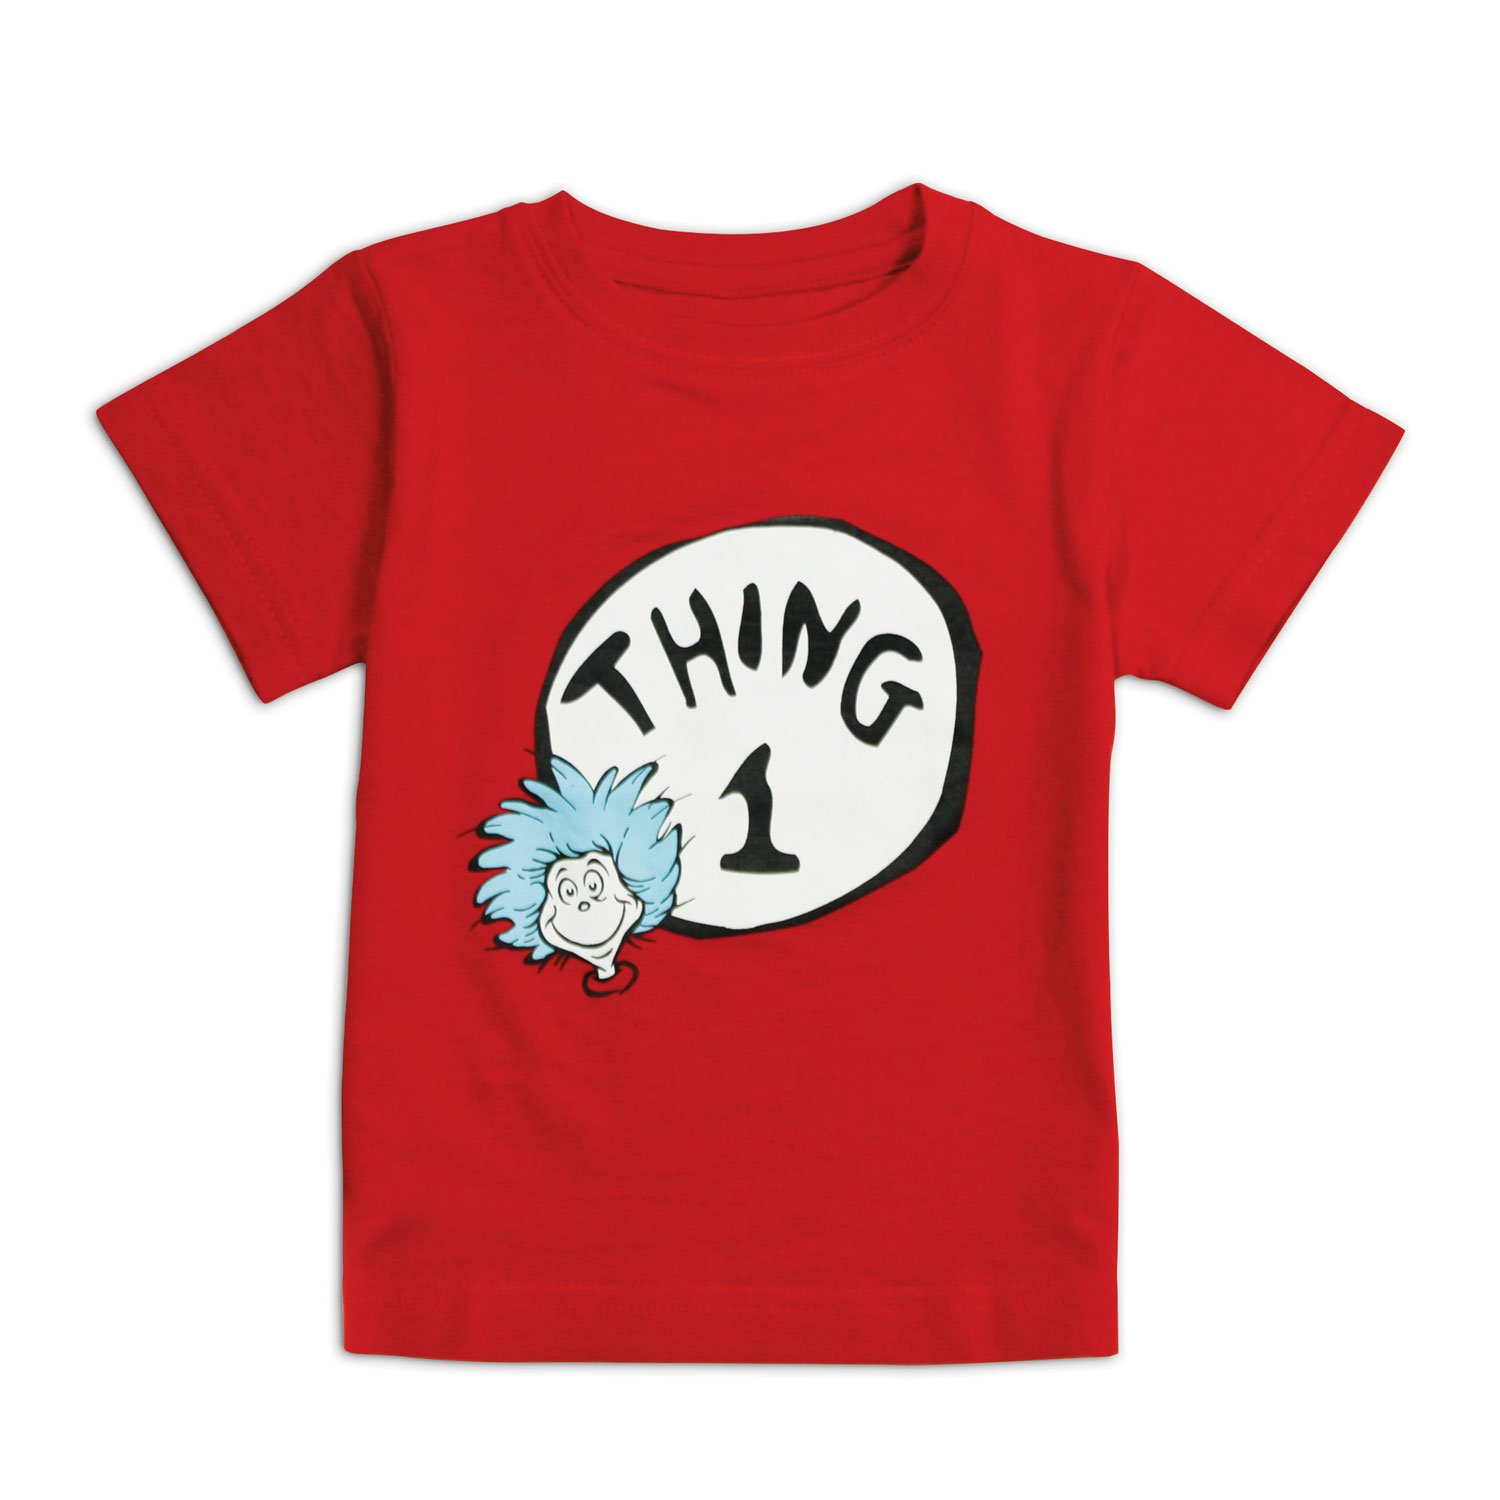 Bumkins Unisex-baby Infant Dr. Seuss Thing 1 Short Sleeve Tee, Red, 24 Months SSTC-T1